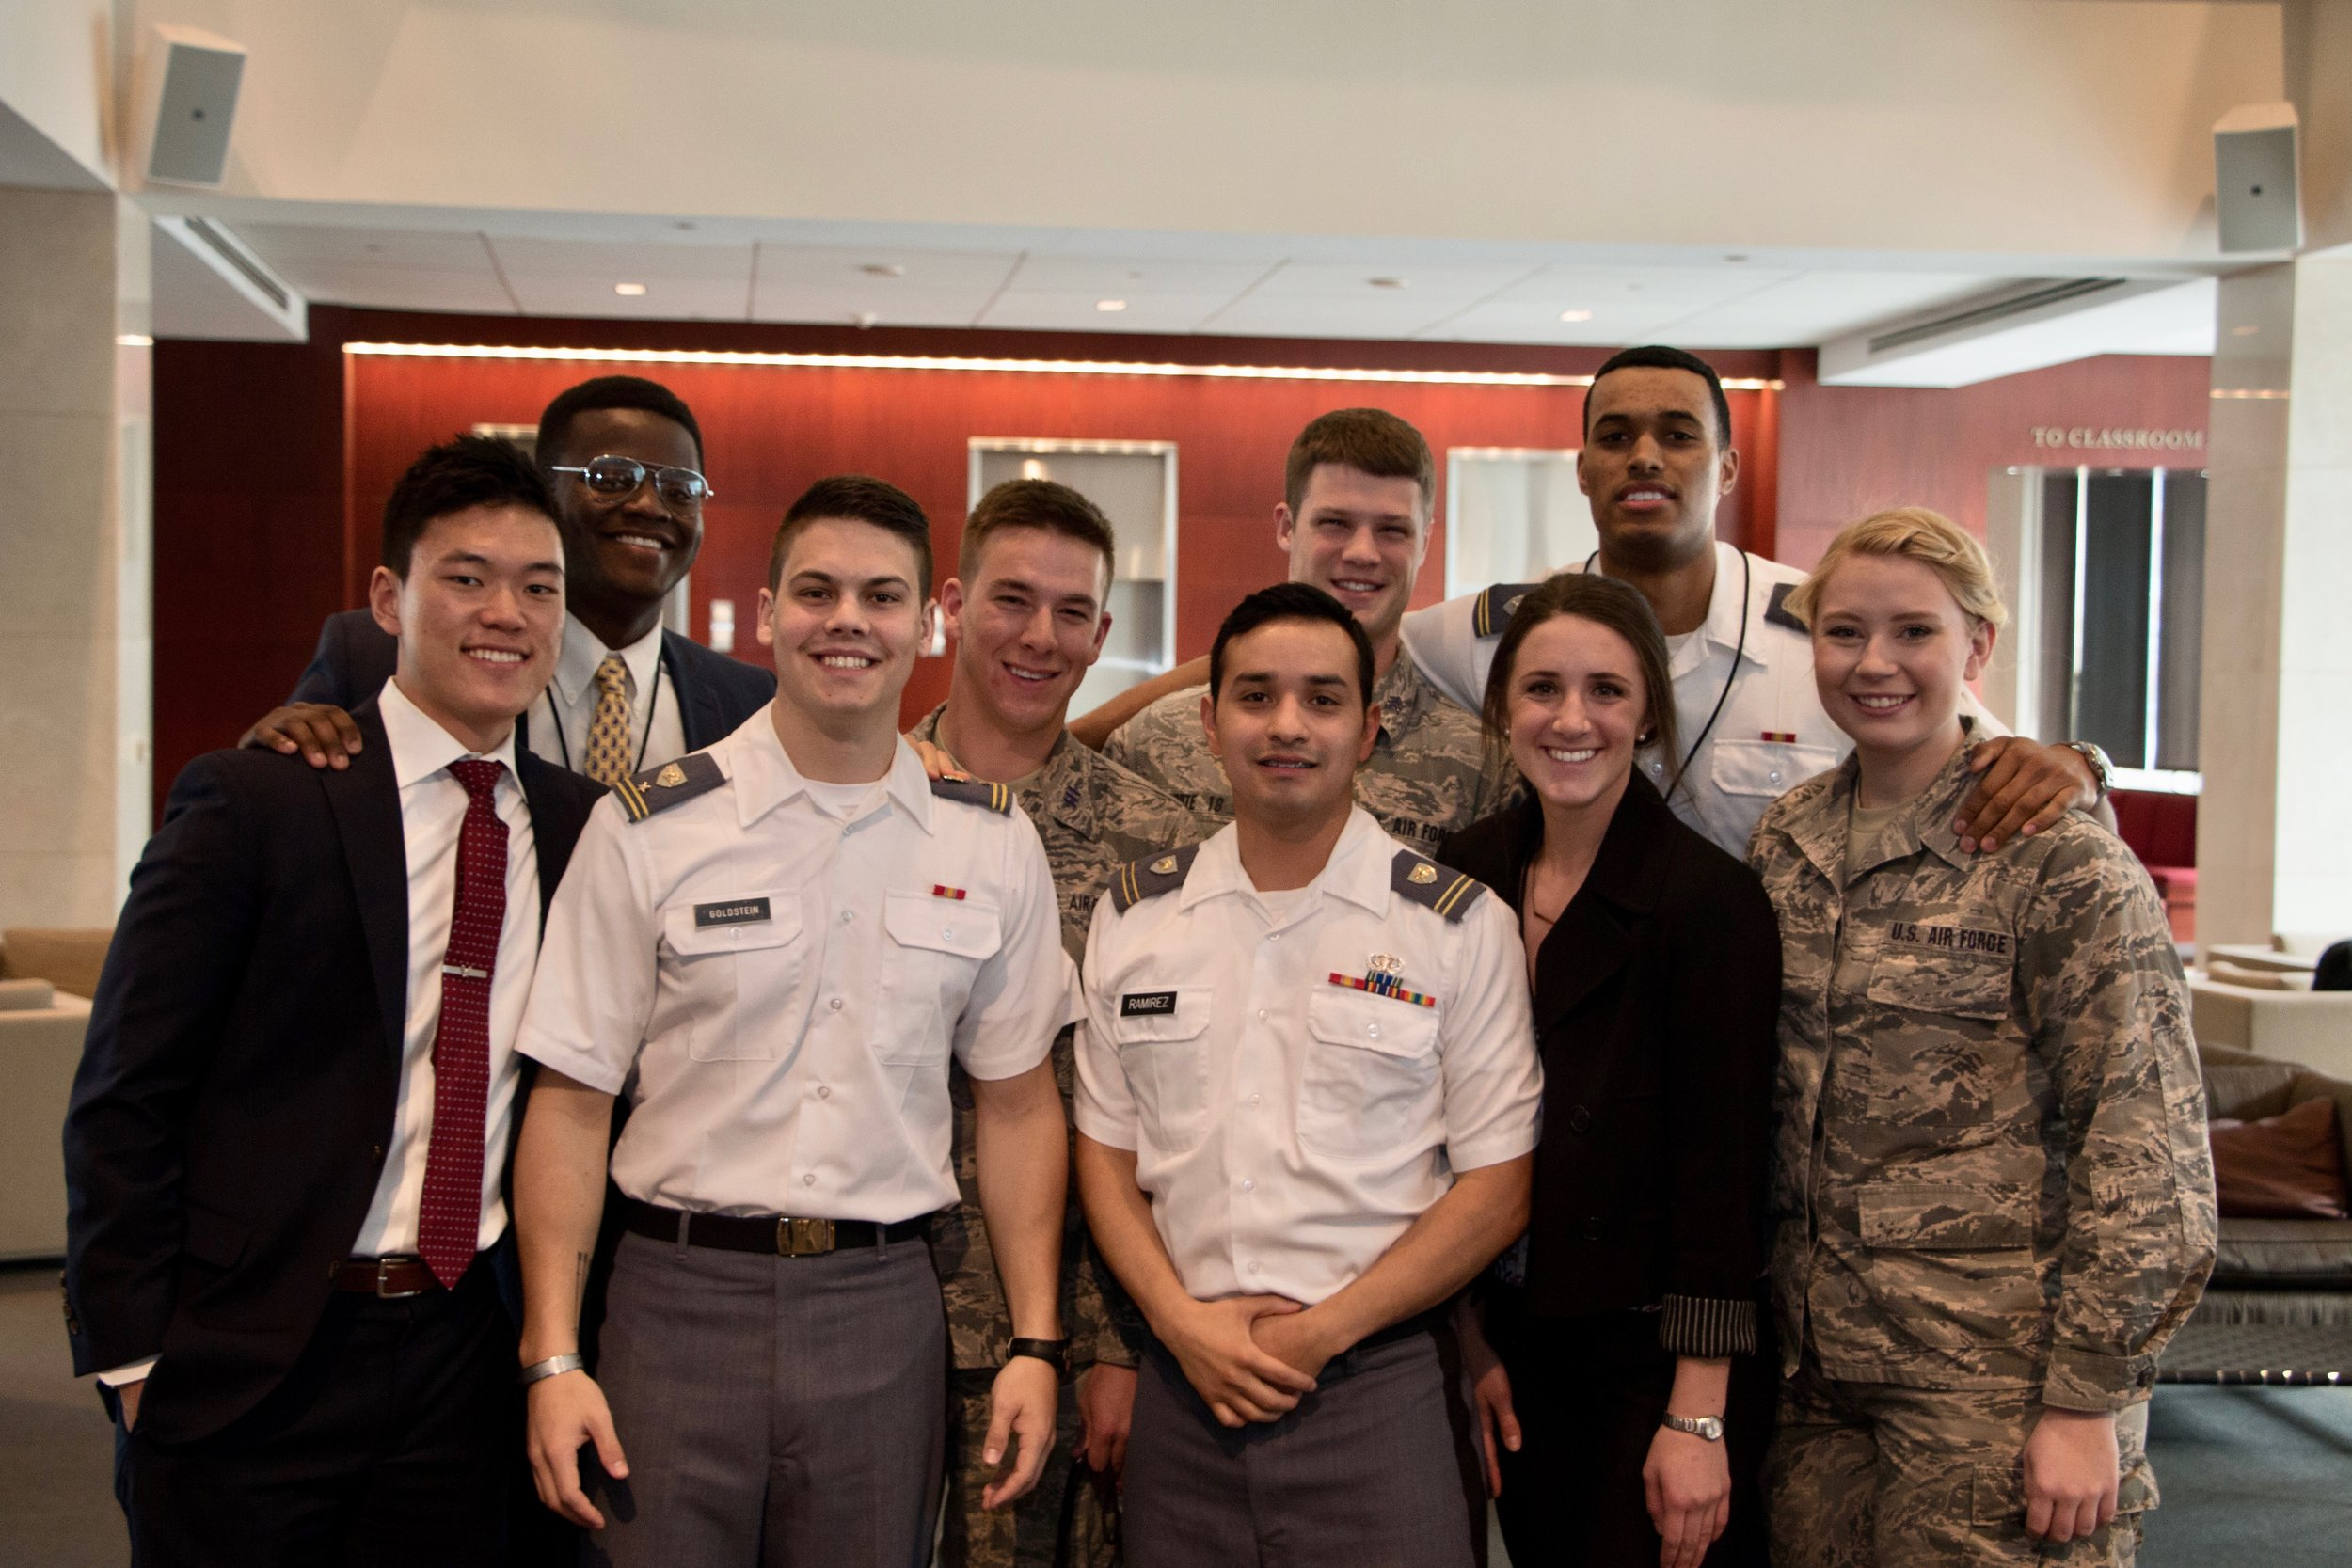 Participants from U.S. Military Academies. Joe Gibson/American Red Cross